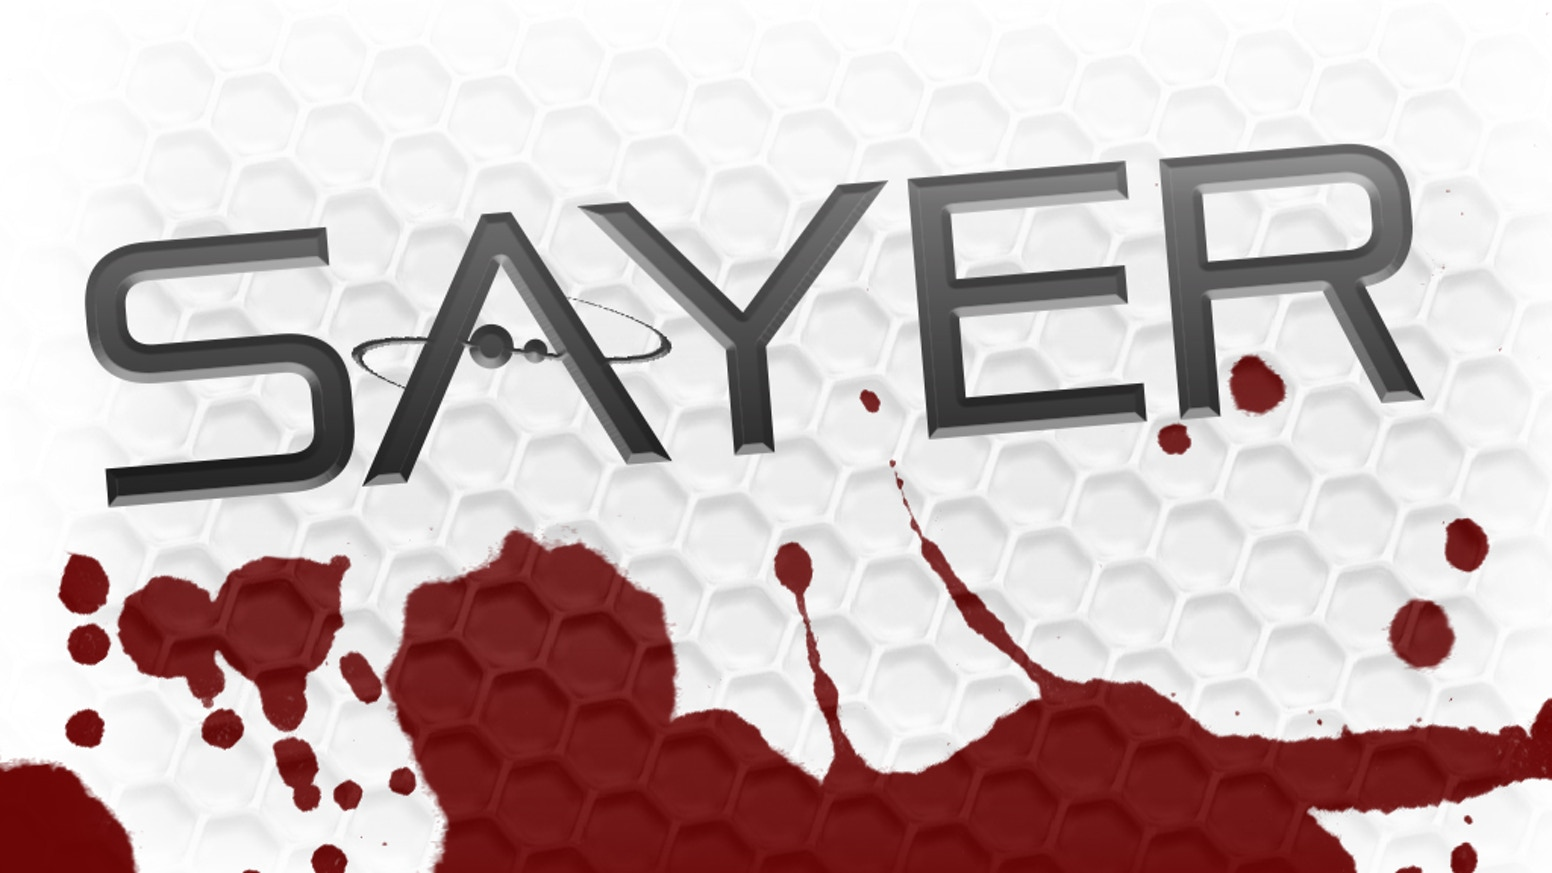 SAYER is a dark, witty, fourth wall shattering voyage into the dangers of artificial intelligence and humanity's ultimate ambitions.